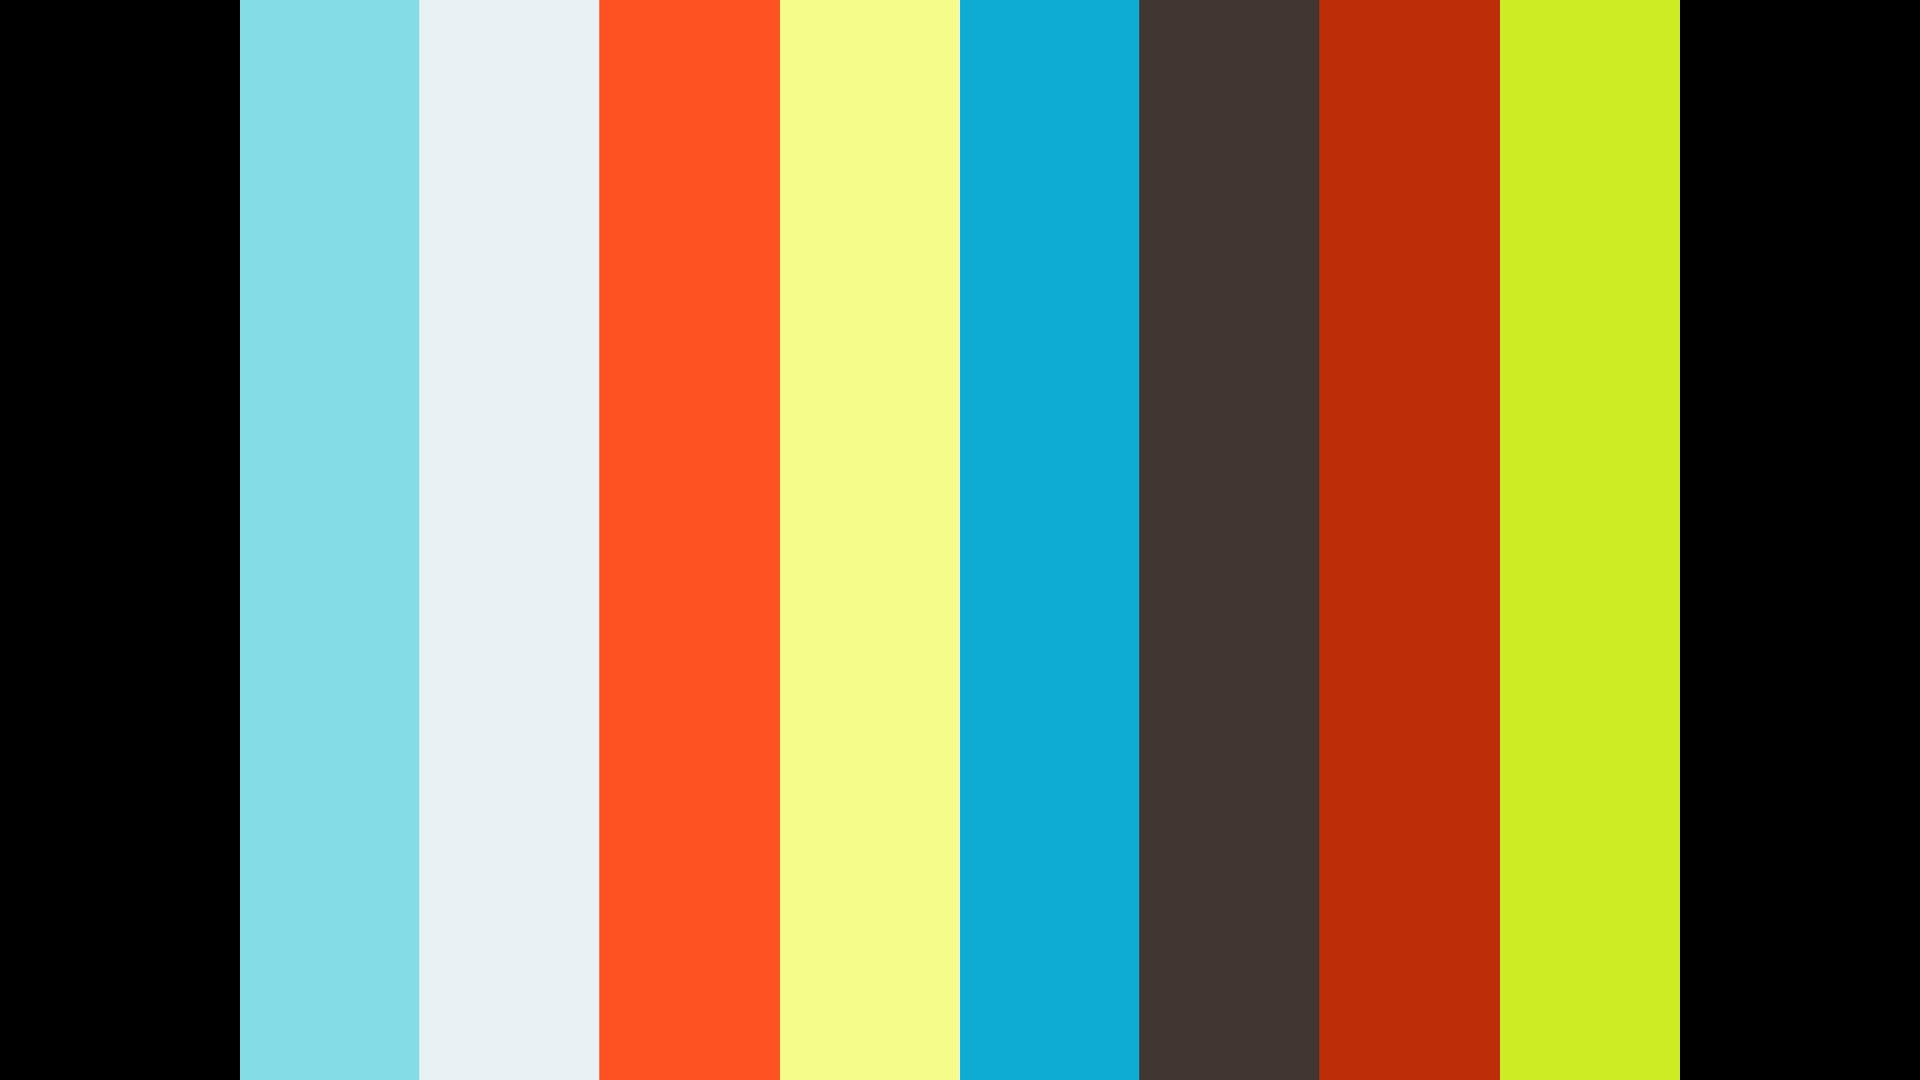 Kathy Thomas explains why she refers Key Moment Films